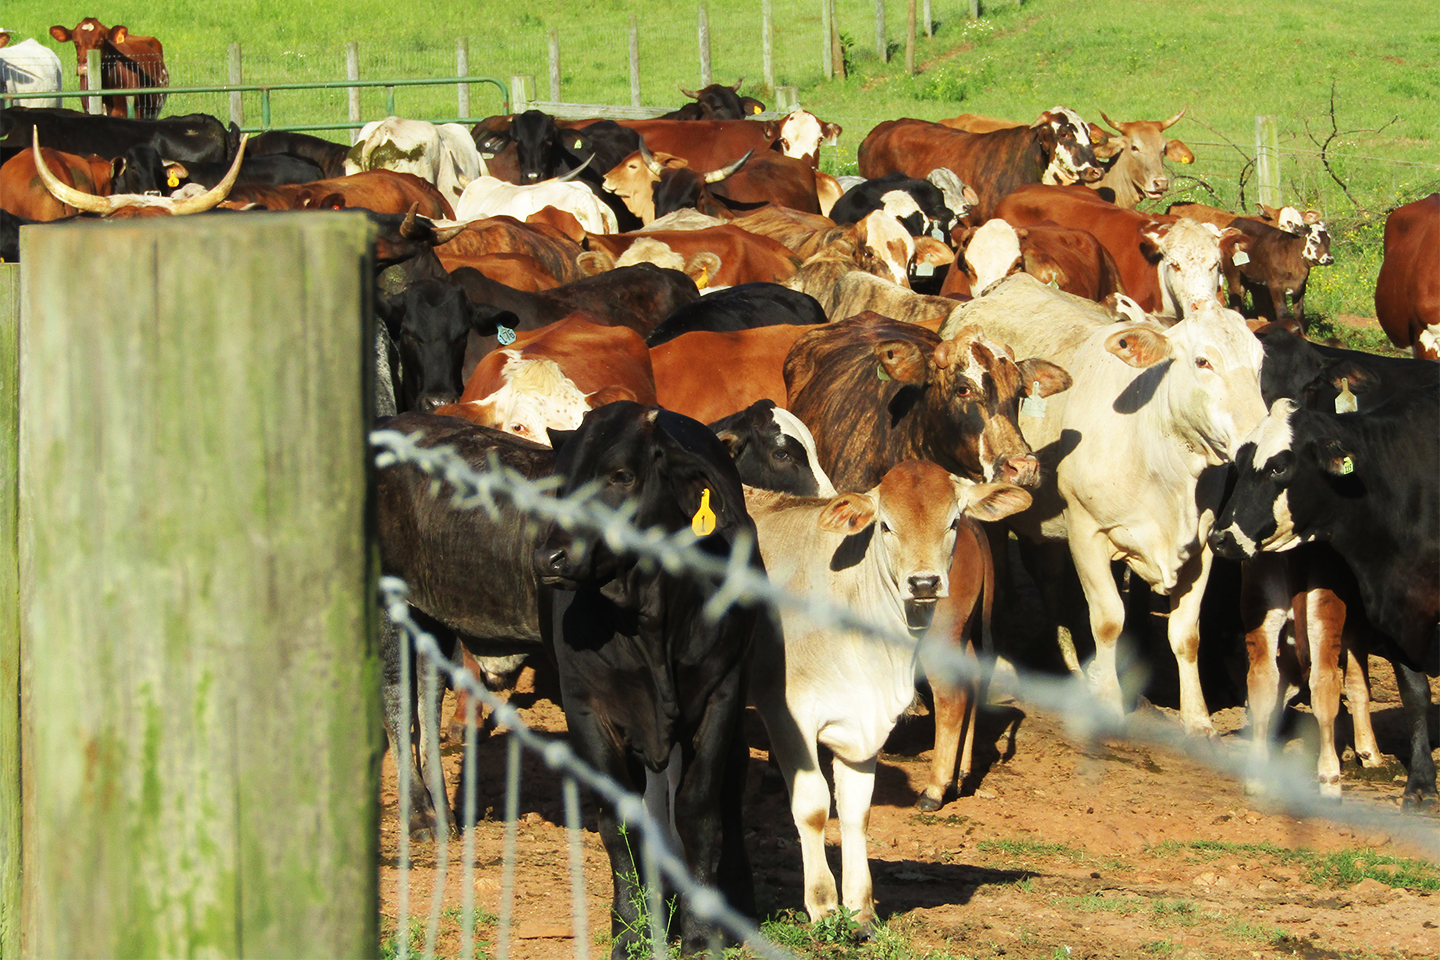 Cattle standing behind a barb wire fence